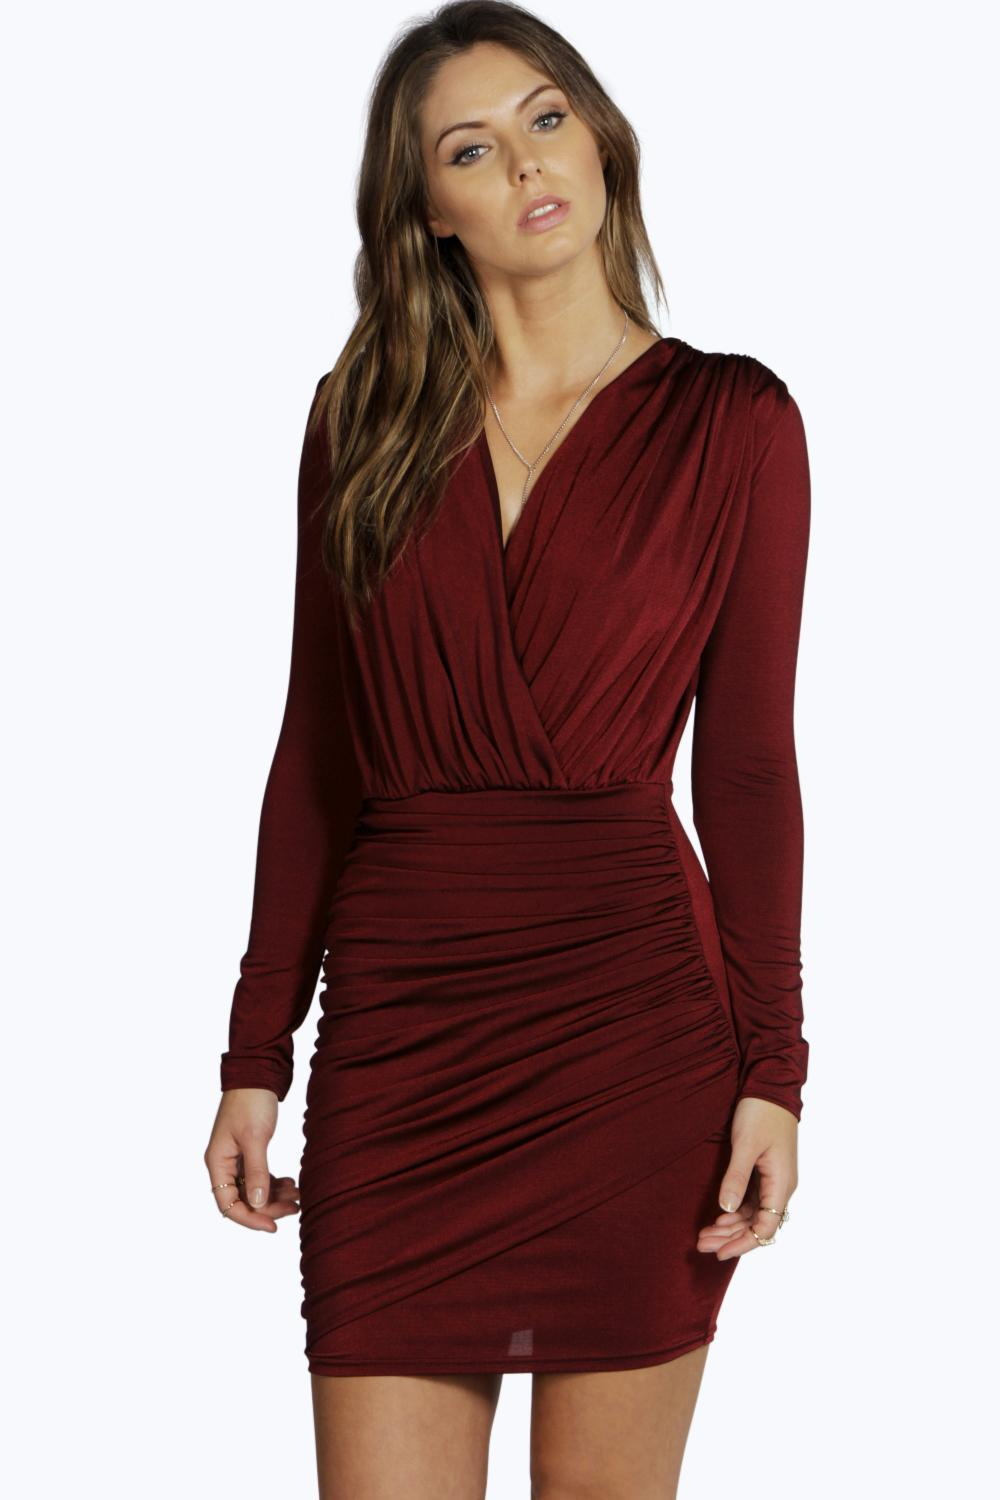 Slinky Wrap Long Sleeve Bodycon Dress Berry - length: mini; neckline: low v-neck; fit: tight; pattern: plain; style: bodycon; waist detail: twist front waist detail/nipped in at waist on one side/soft pleats/draping/ruching/gathering waist detail; bust detail: ruching/gathering/draping/layers/pintuck pleats at bust; predominant colour: burgundy; occasions: evening; fibres: polyester/polyamide - stretch; hip detail: ruching/gathering at hip; sleeve length: long sleeve; sleeve style: standard; pattern type: fabric; texture group: jersey - stretchy/drapey; season: a/w 2015